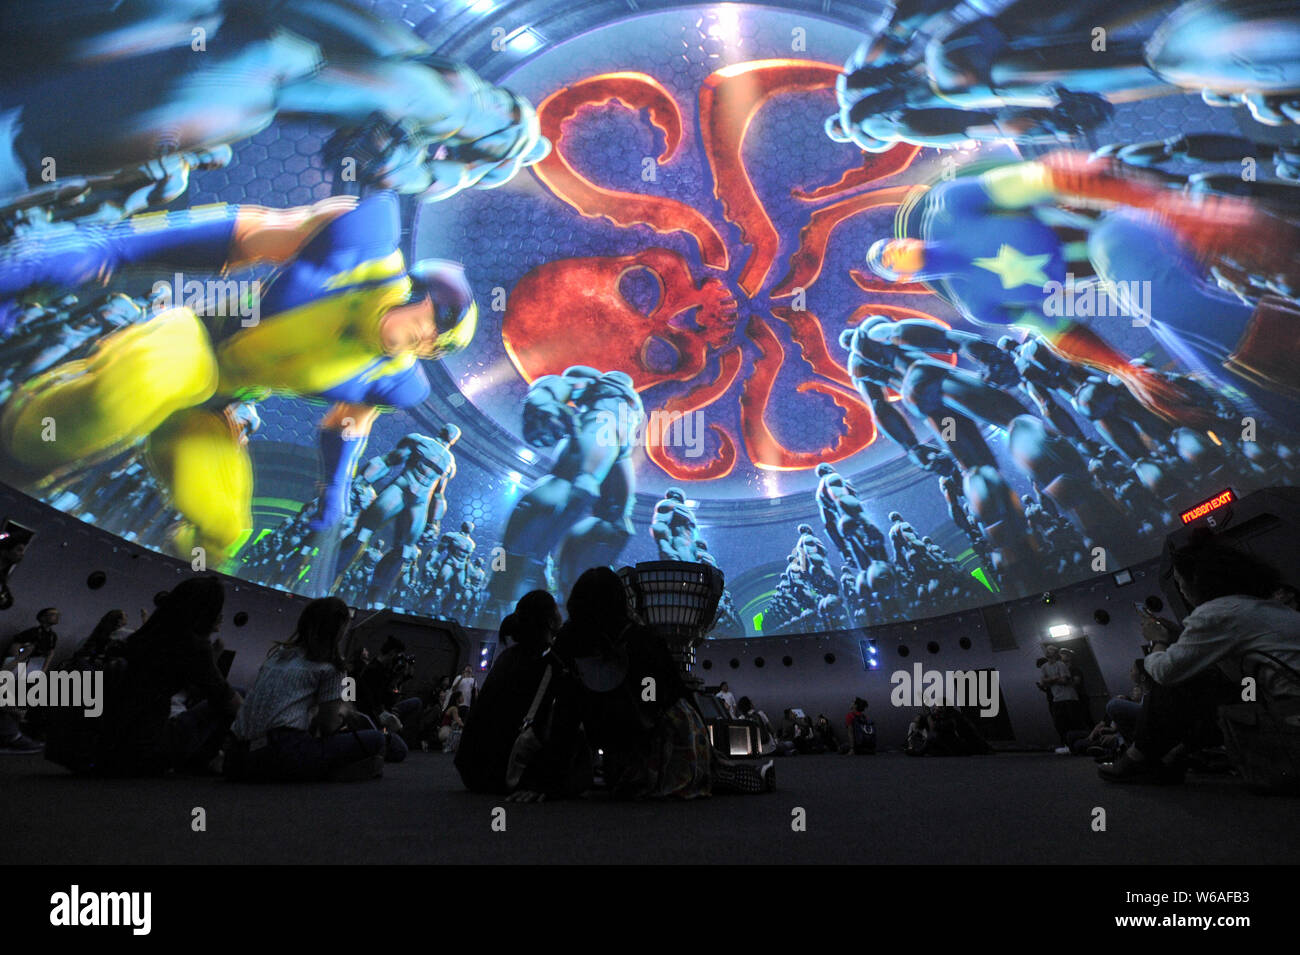 Stereographic Stock Photos & Stereographic Stock Images - Alamy